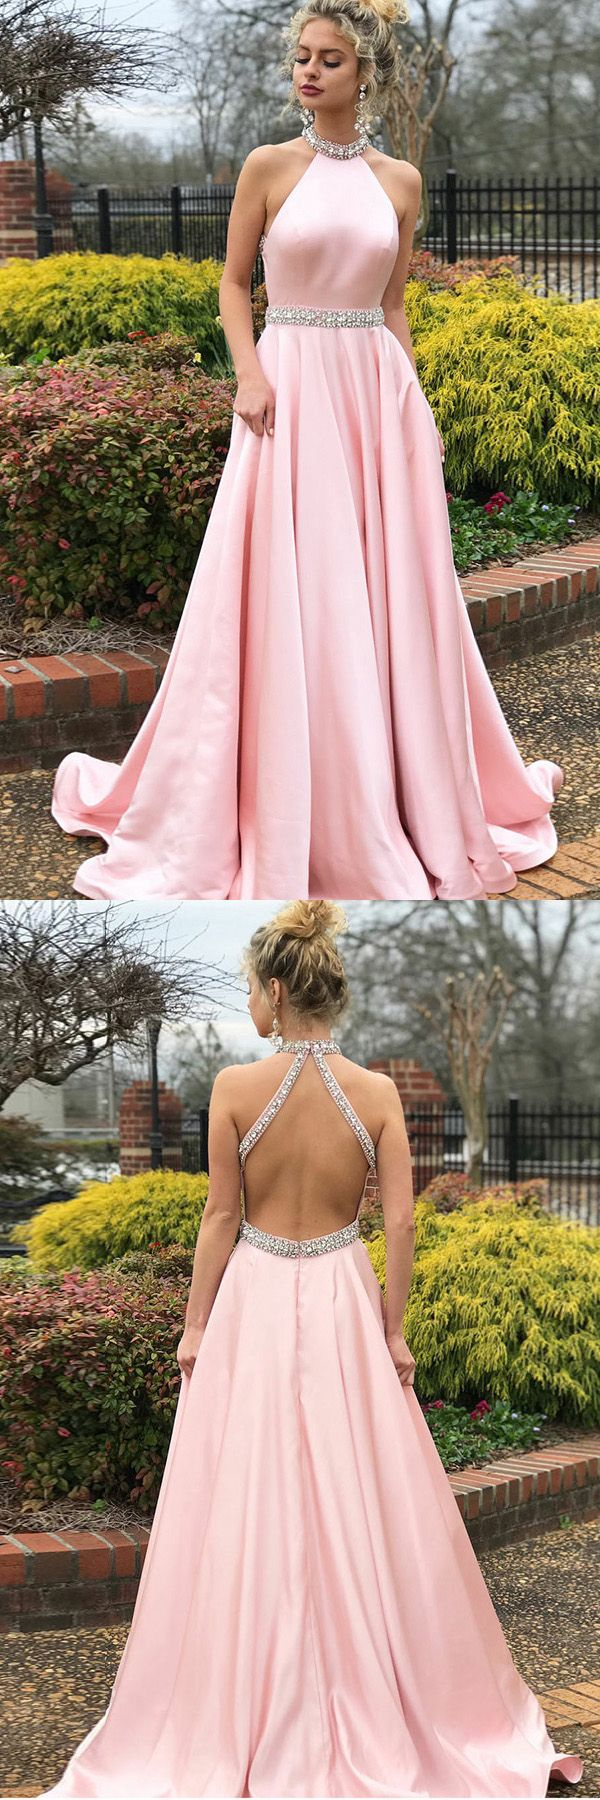 A-Line Pink Satin Open Back Sleeveless Prom Dress with Beading PG602 #prom #promdress #promgown #evening #eveningdress #eveninggown #partydress #satin #pink #aline #fashion #longprom #pgmdress